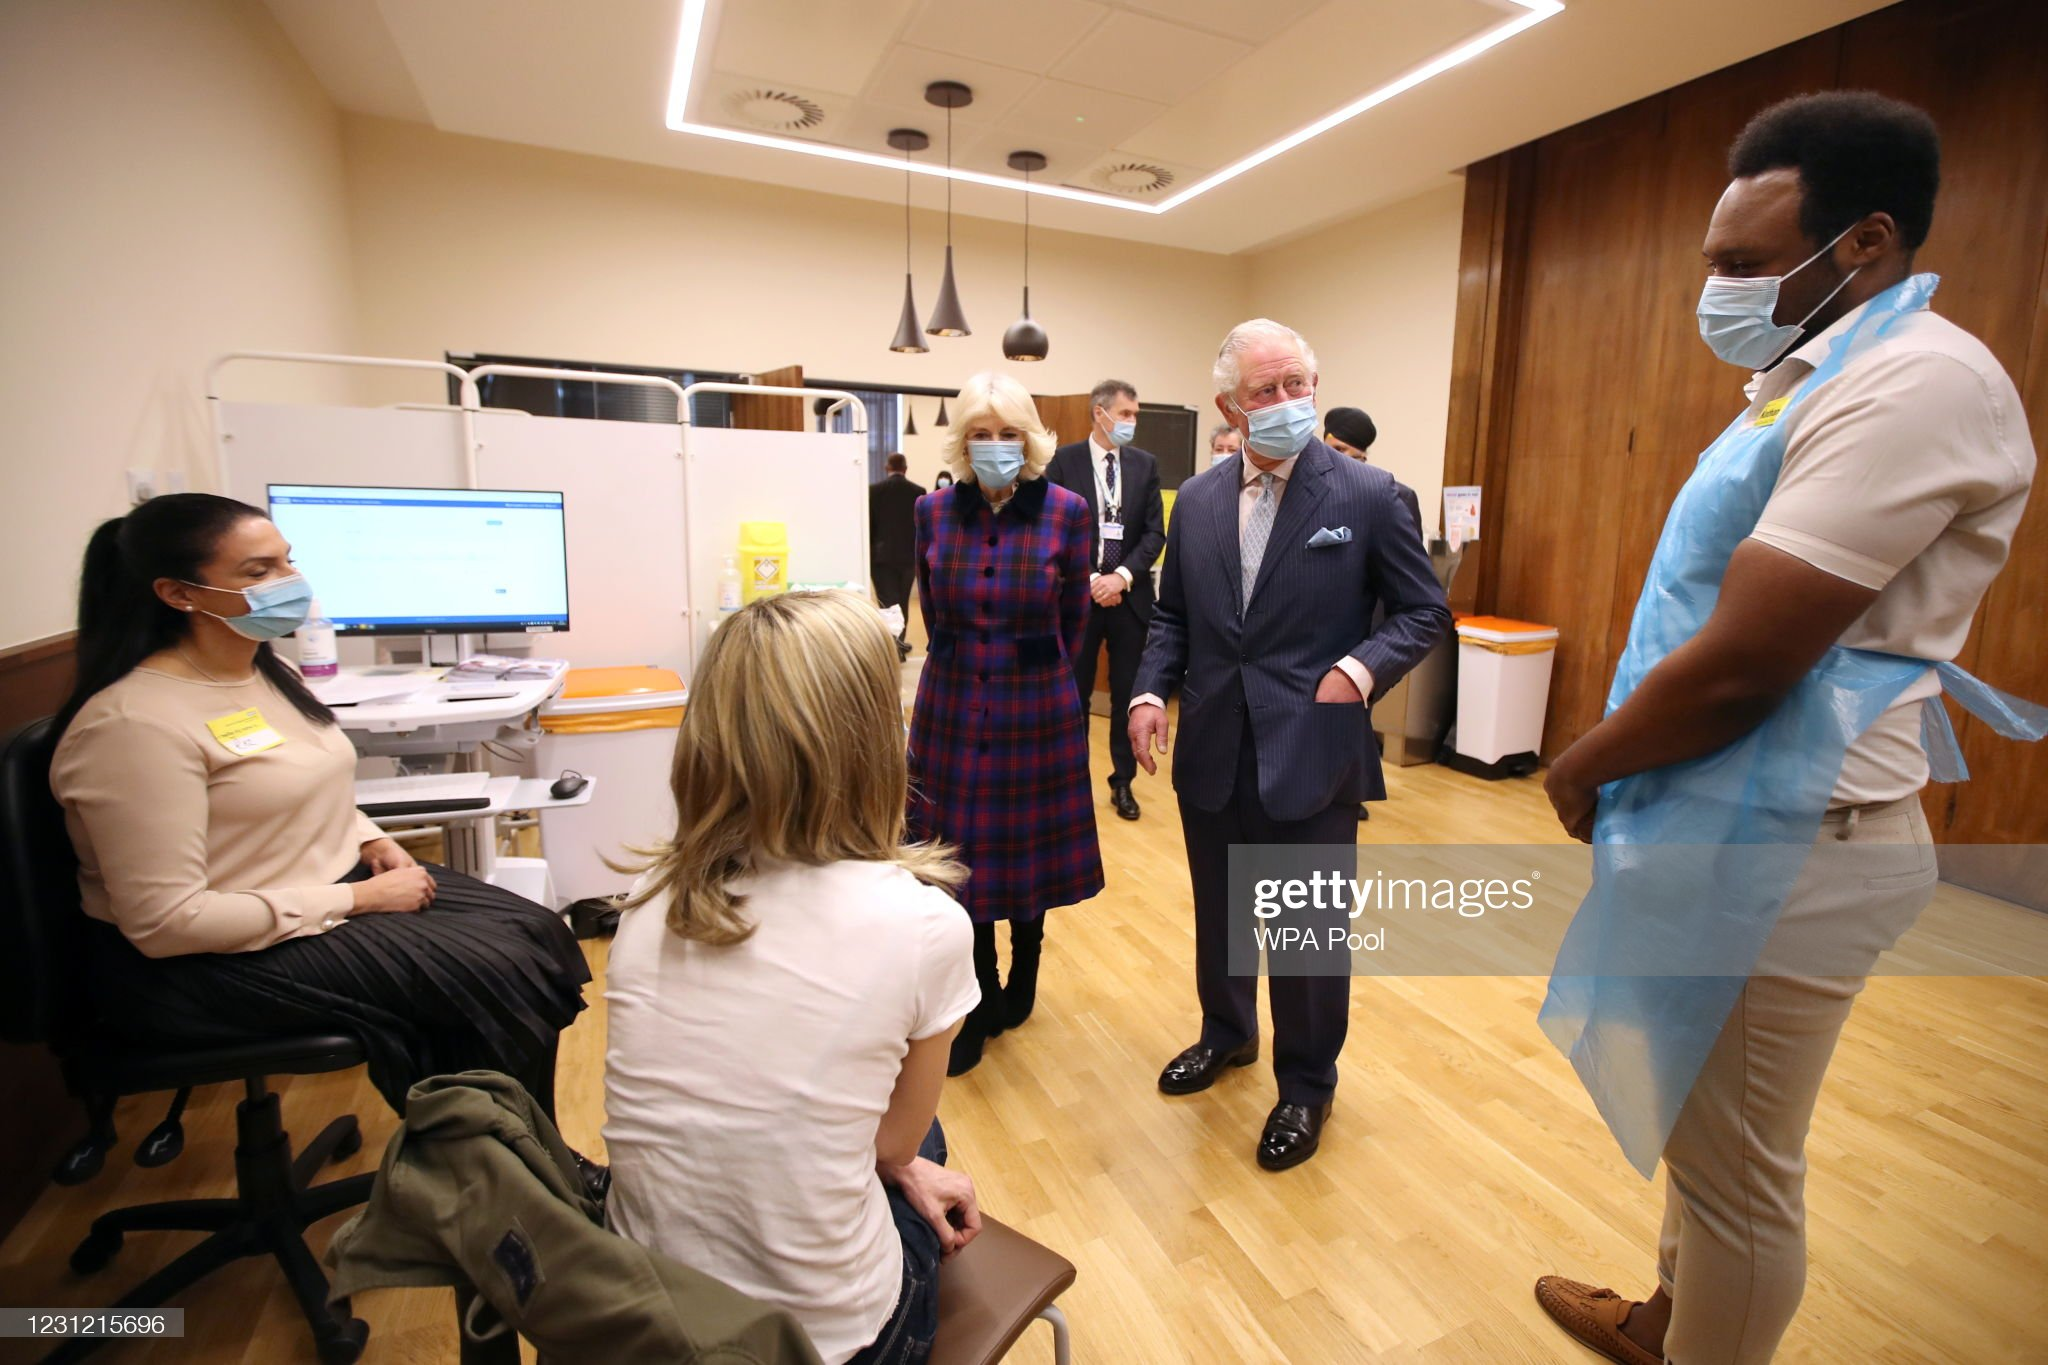 prince-charles-prince-of-wales-and-camilla-duchess-of-cornwall-speaks-picture-id1231215696